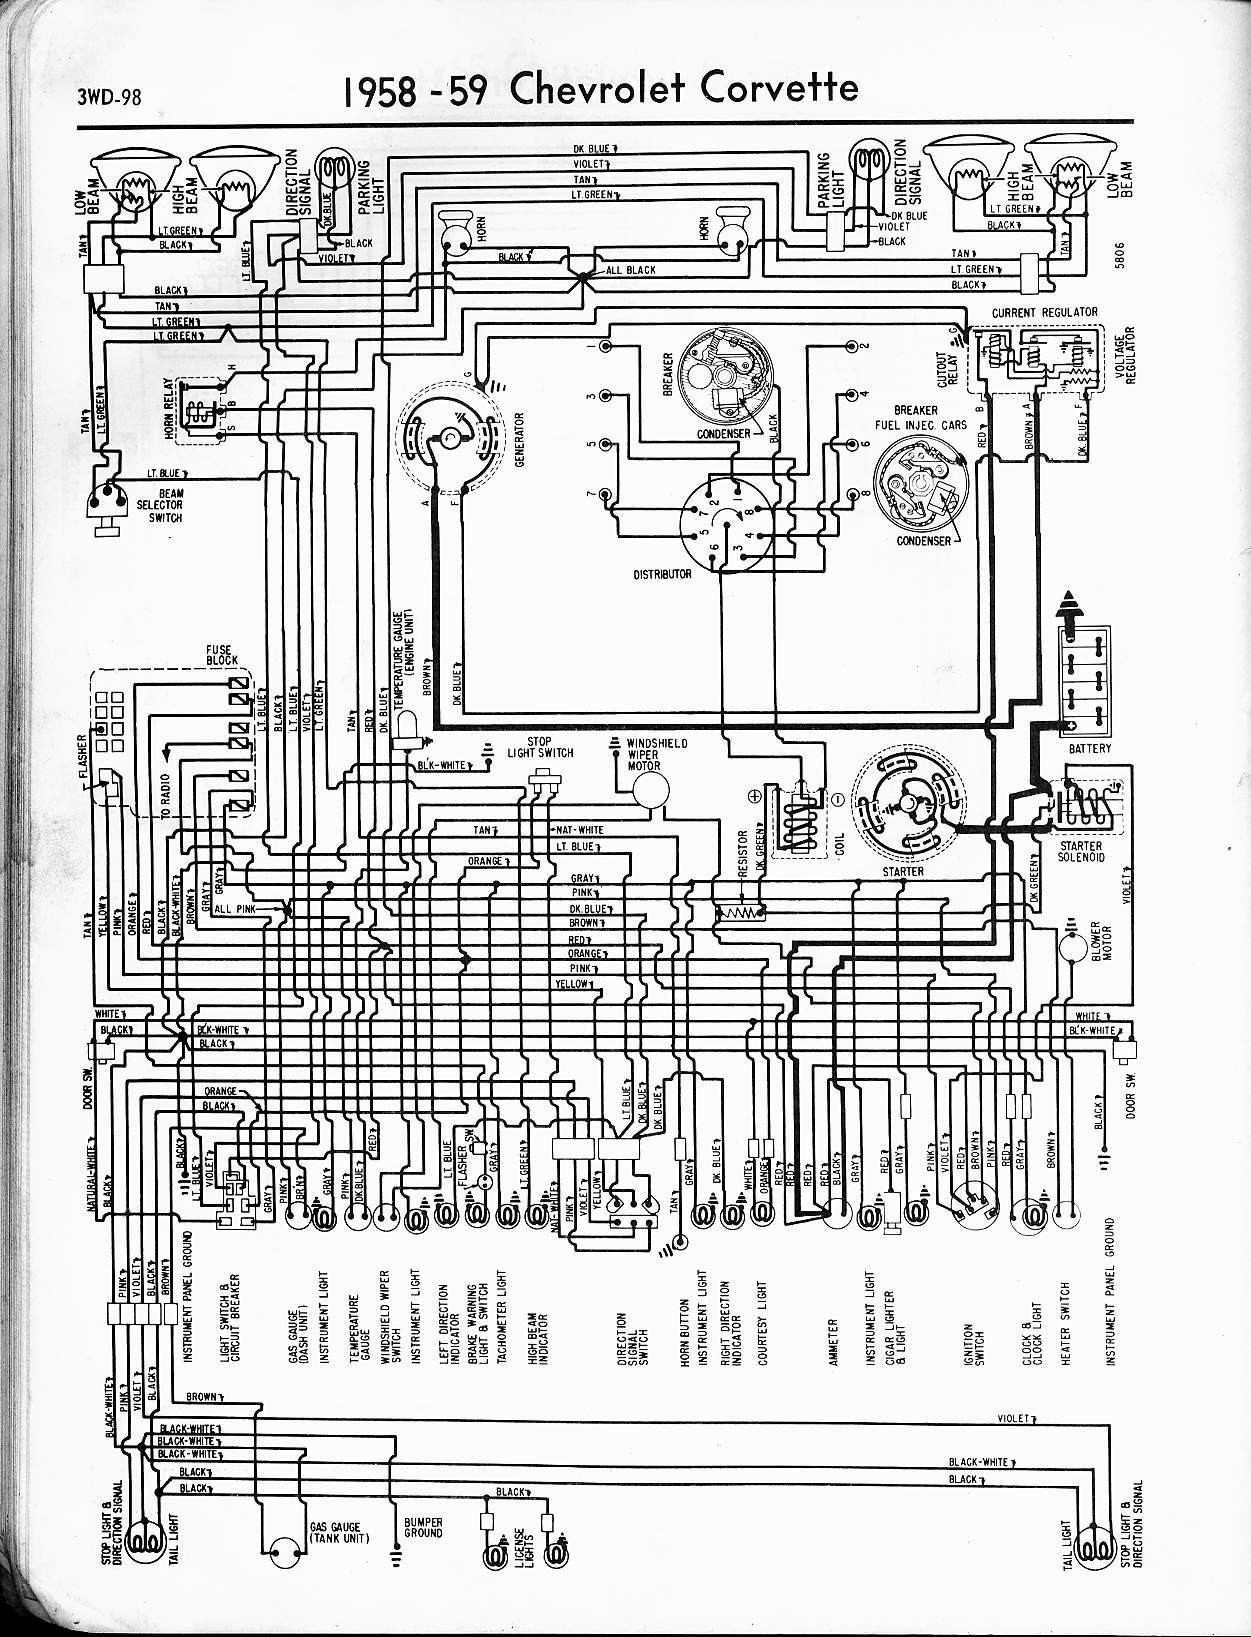 1974 Chevy Truck Wiring Diagram 57 65 Chevy Wiring Diagrams Of 1974 Chevy  Truck Wiring Diagram